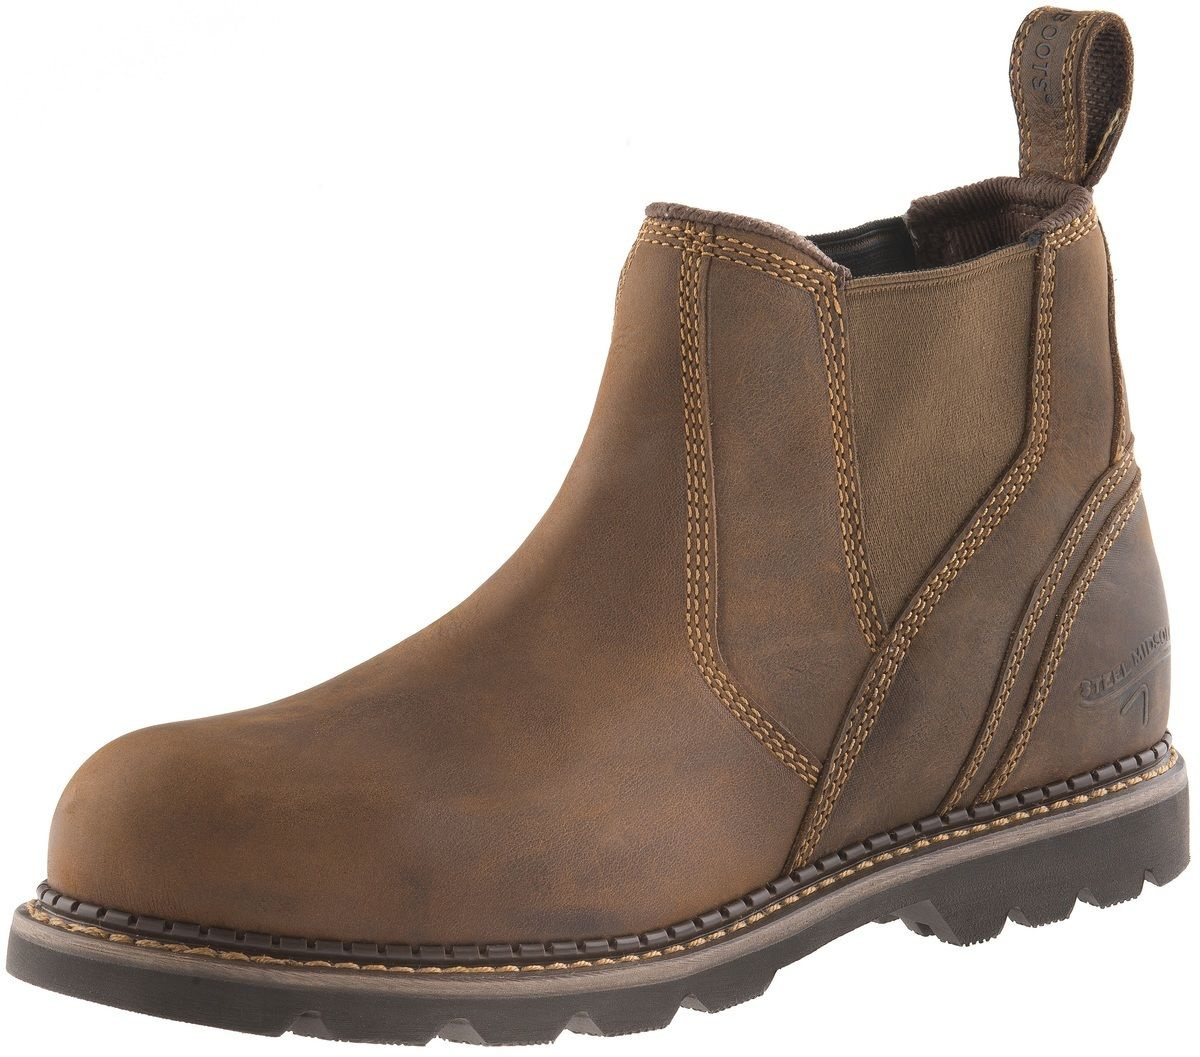 Buckler B1555SM waxed brown crazy boot horse leather safety dealer boot crazy  6/40 - 13/47 72c001